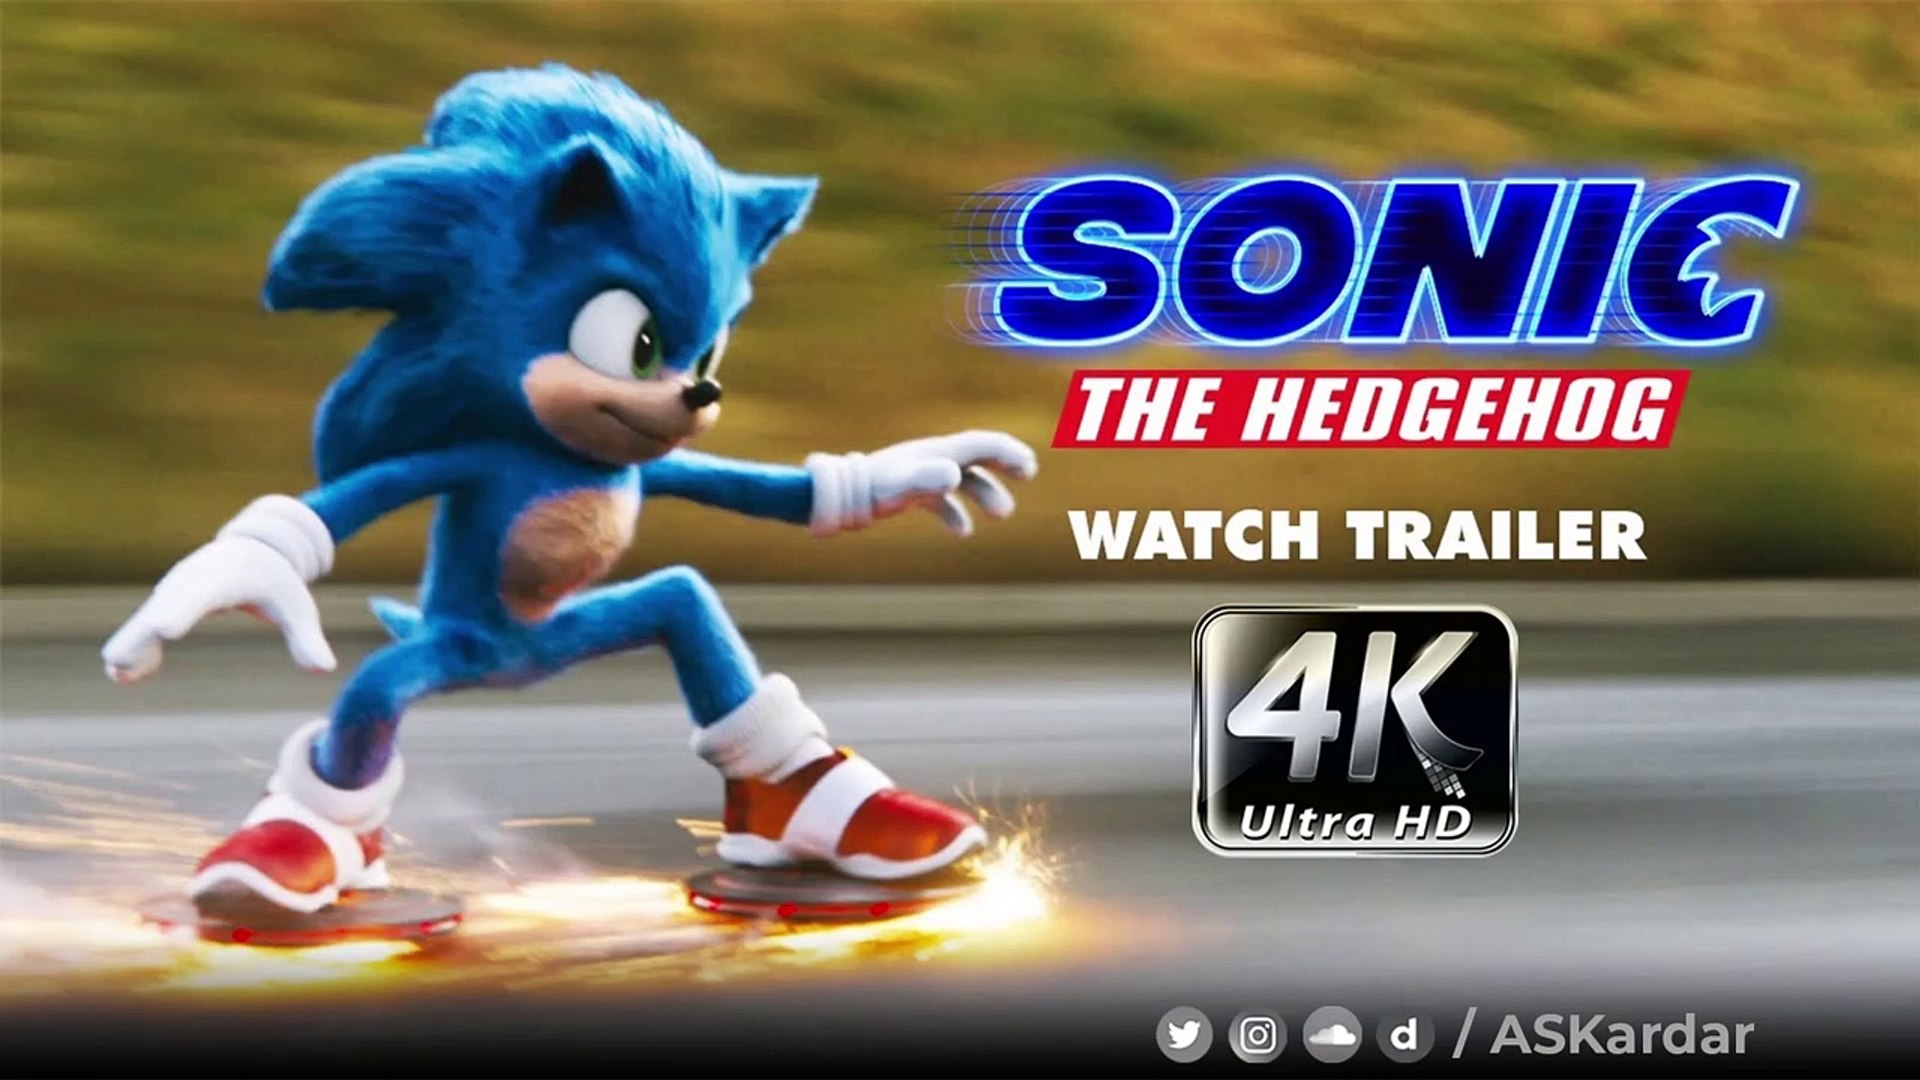 4k Sonic The Hedgehog Official Trailer 2020 Askardar Video Dailymotion